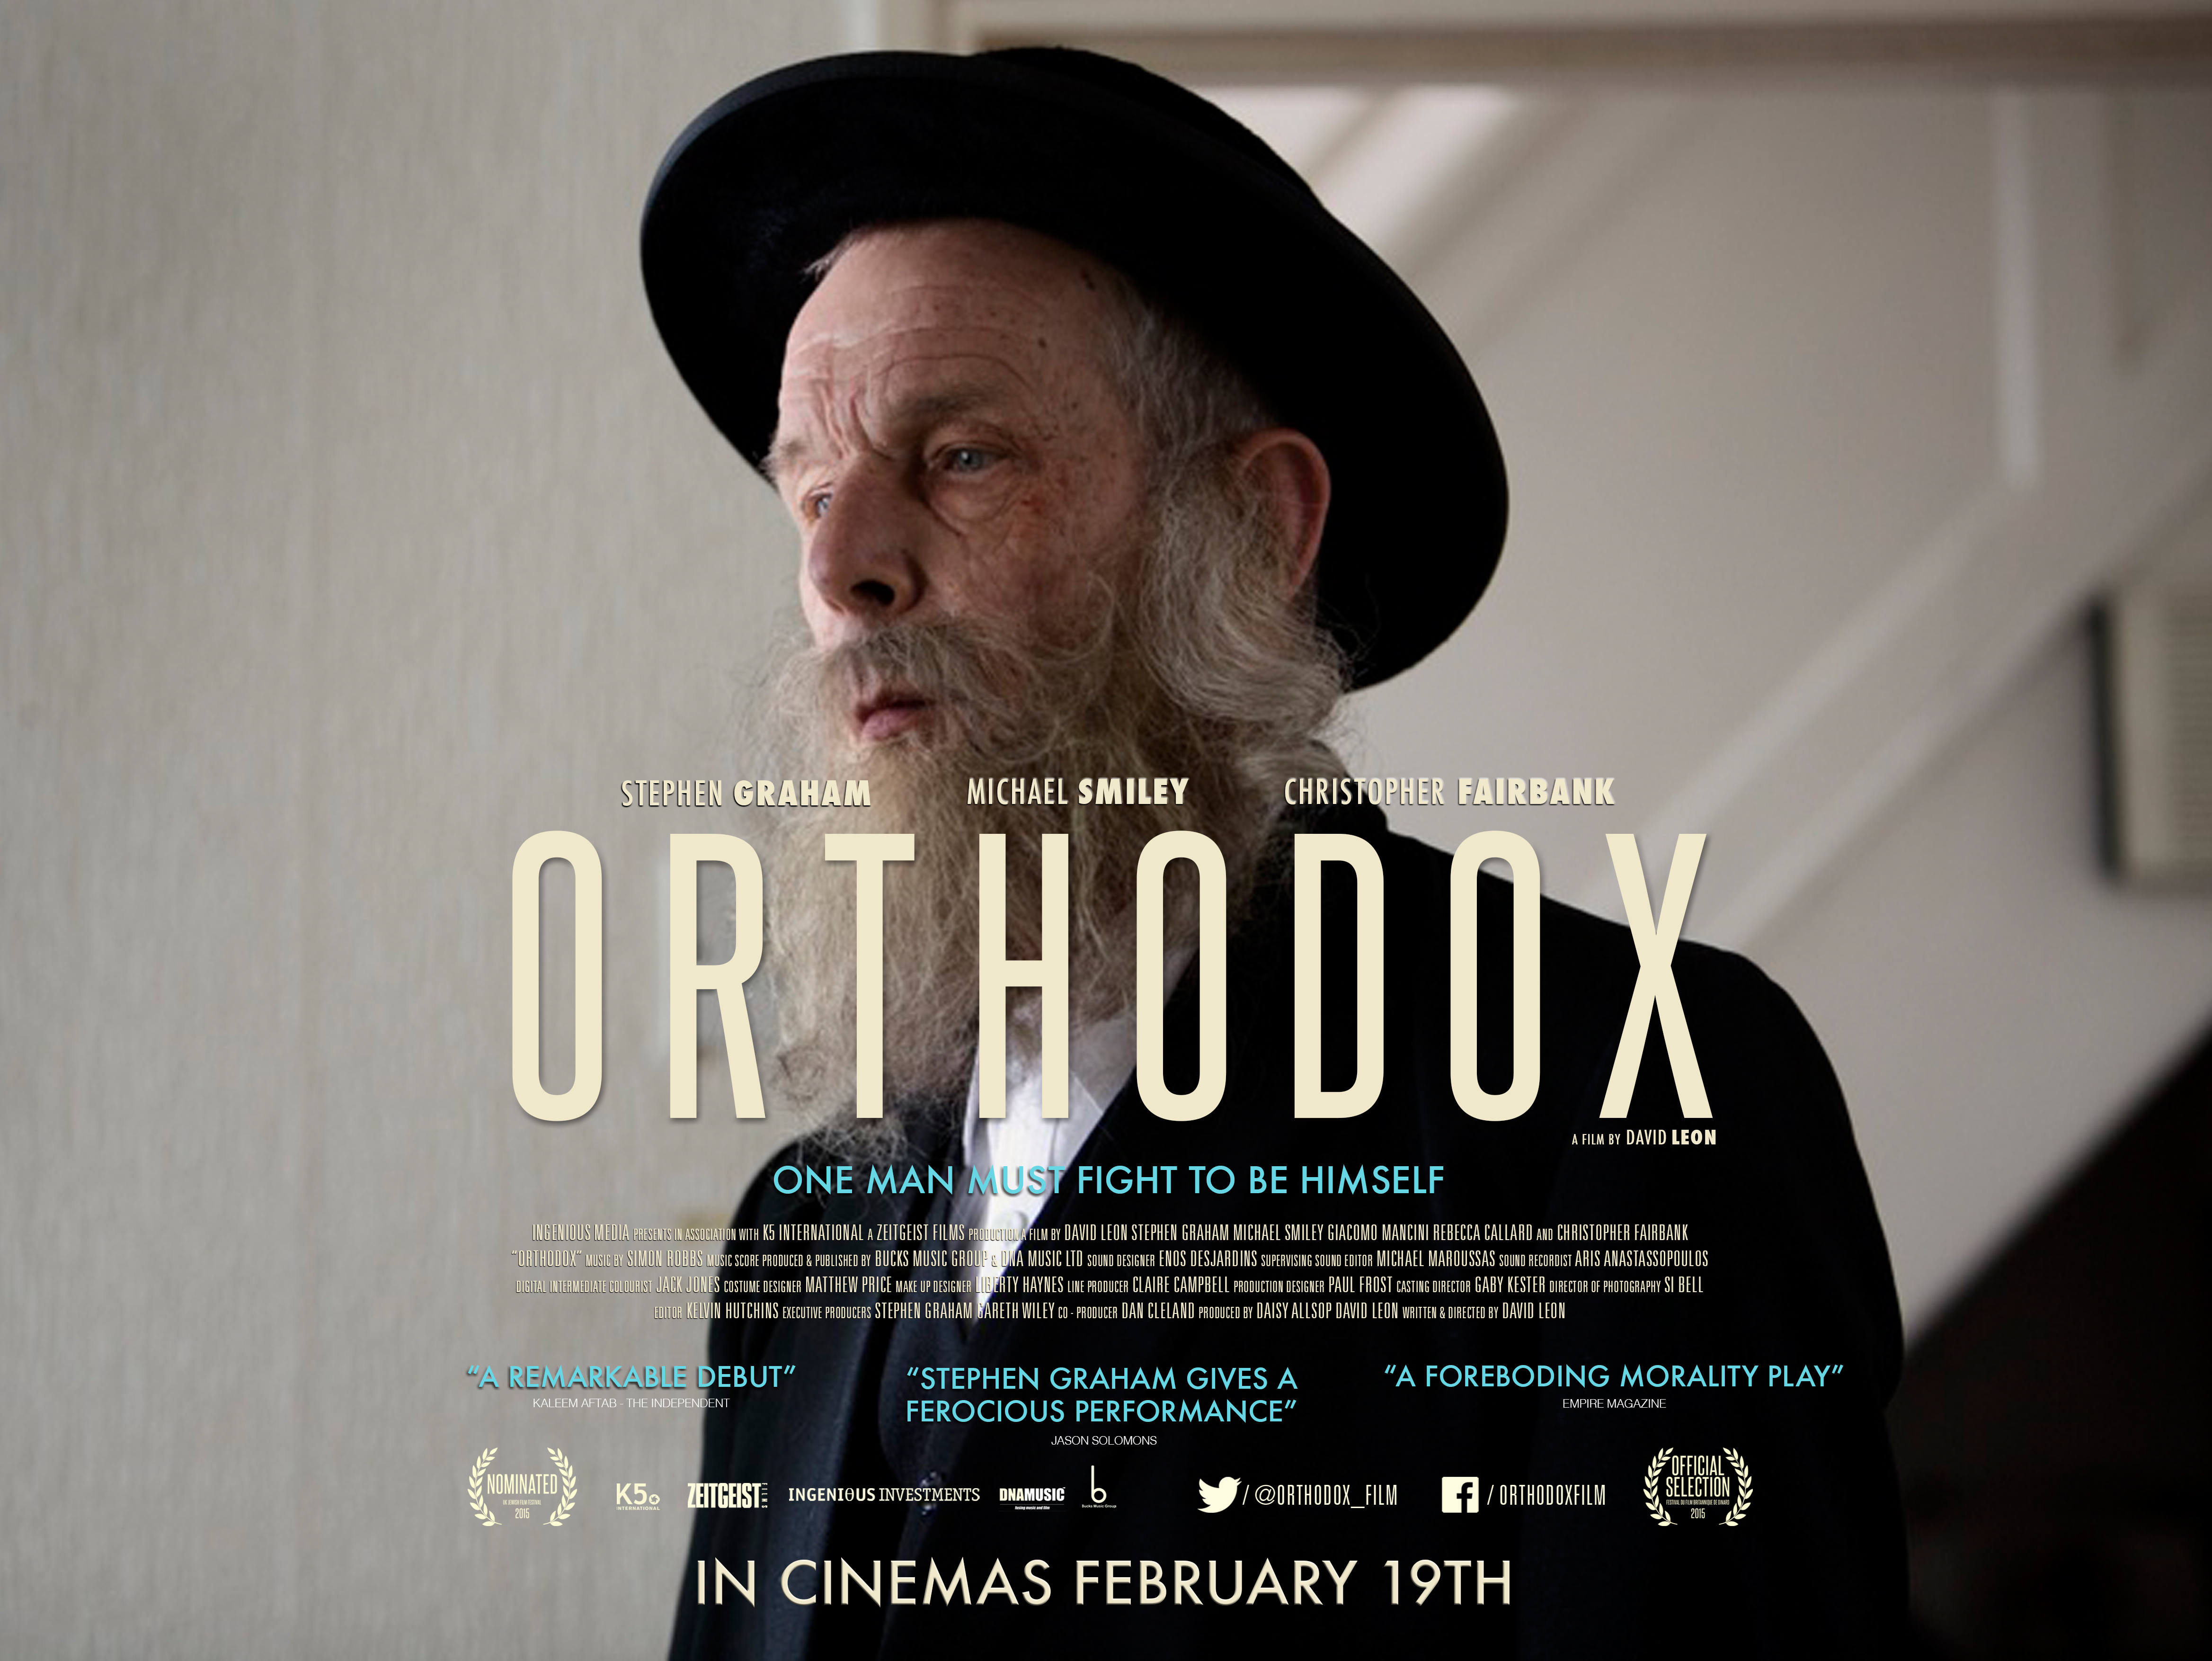 Christopher Fairbank in Orthodox (2015)